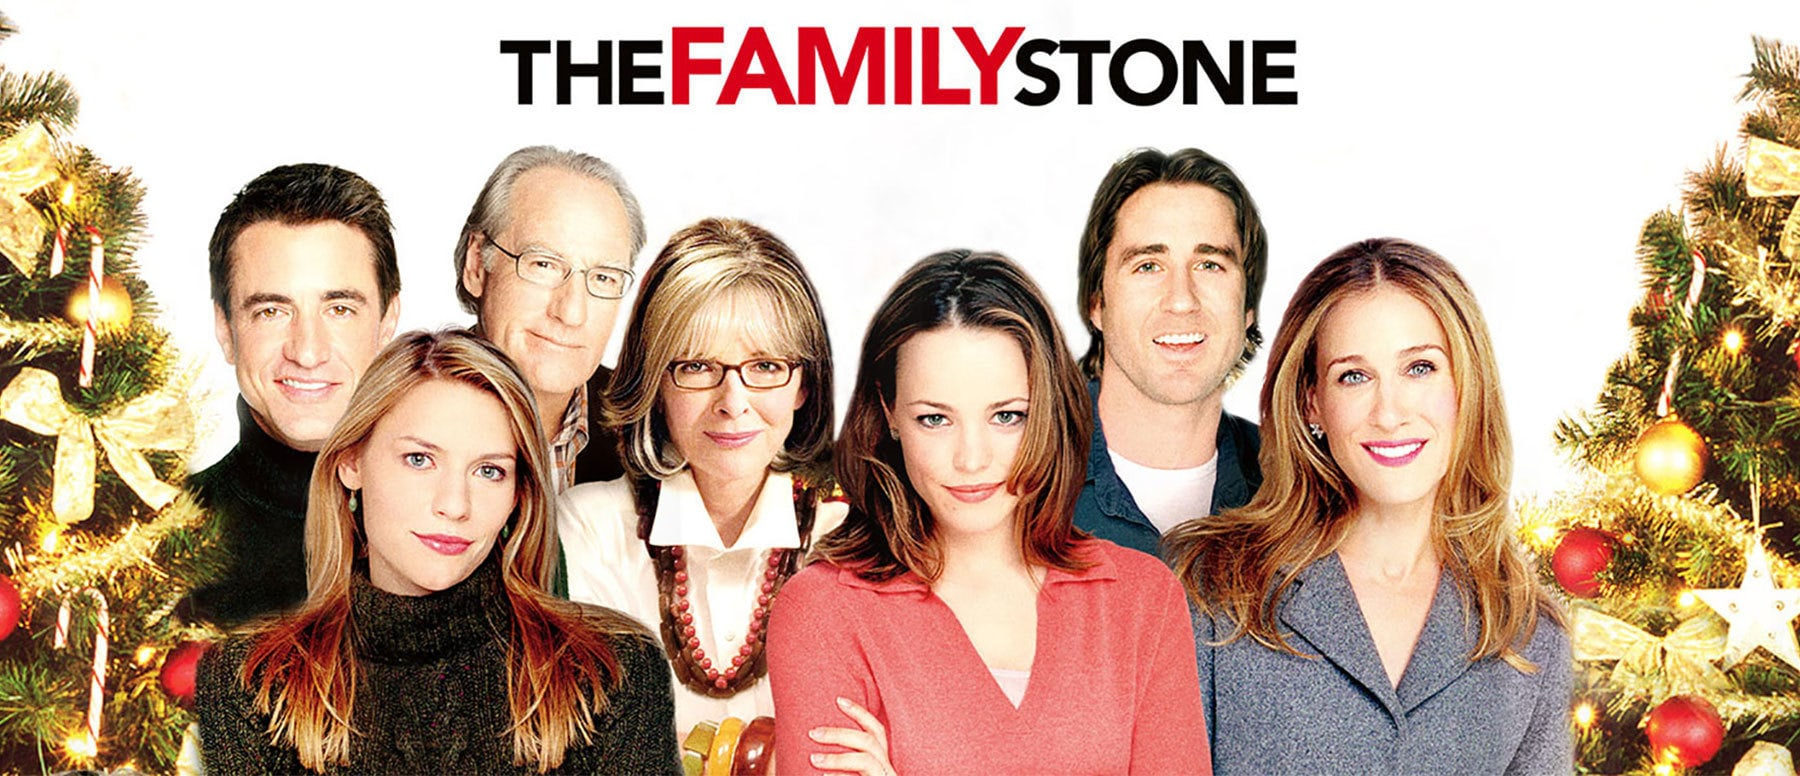 The Family Stone Hero